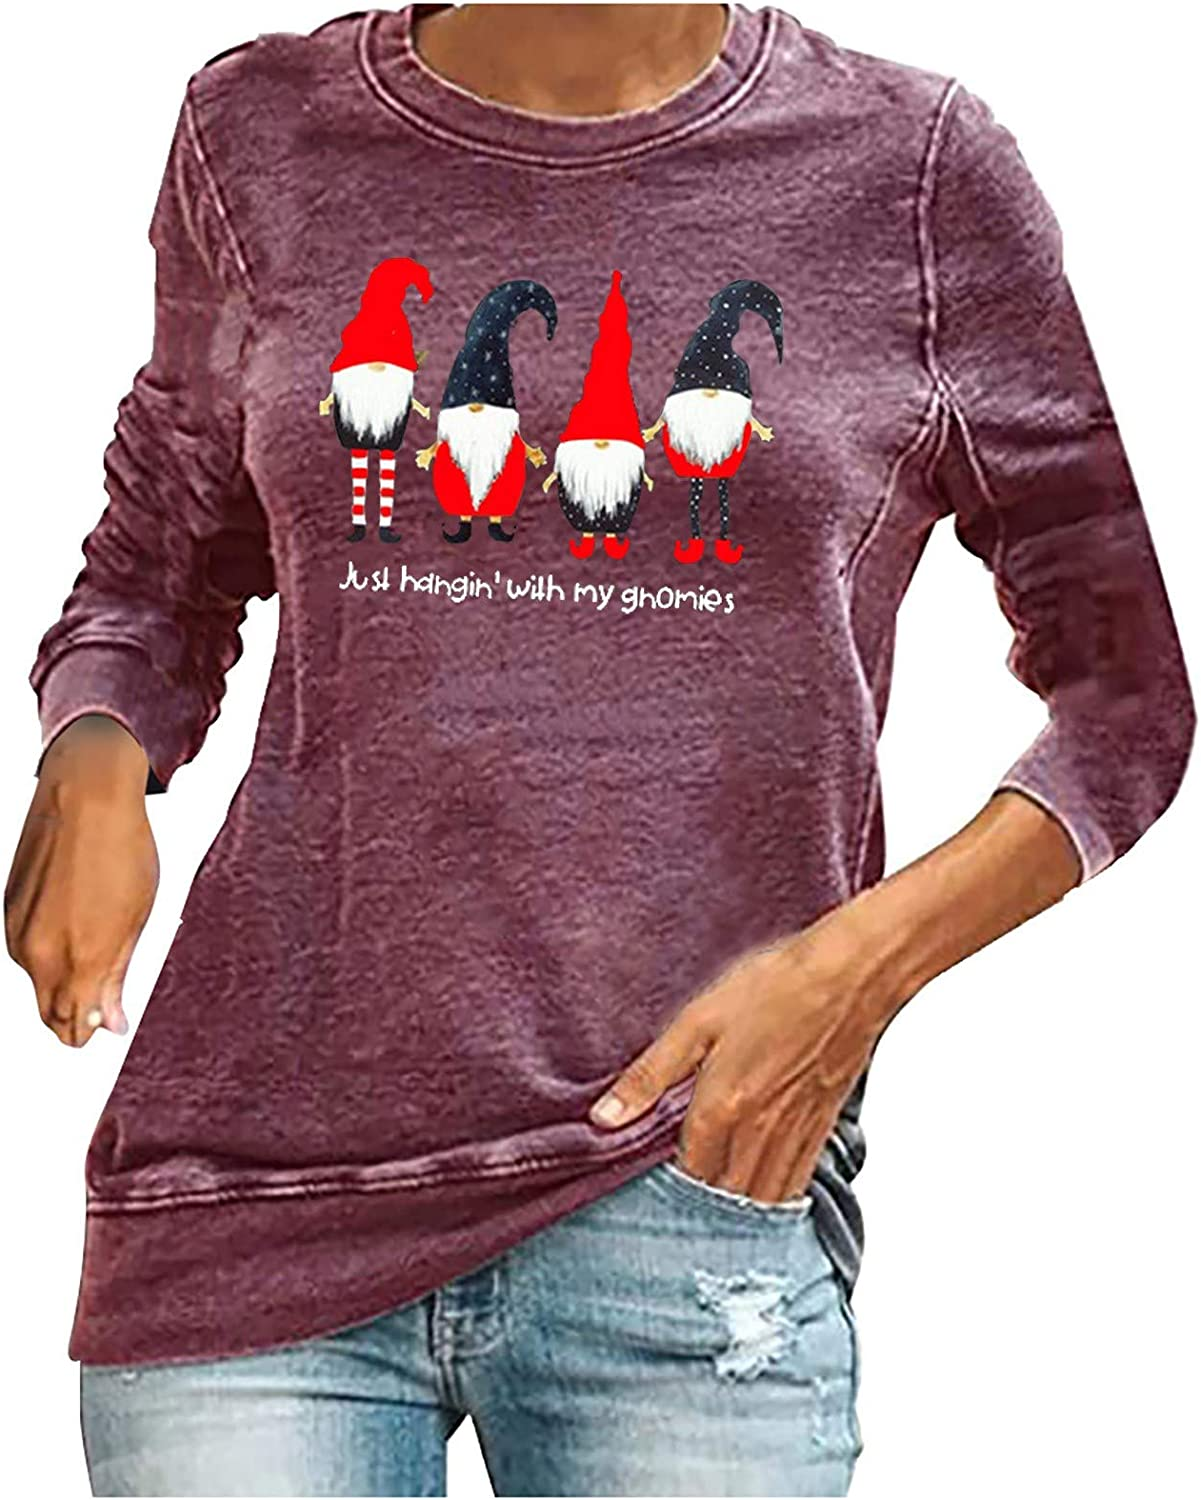 Awolf Christmas Sweatshirts for Women Cute Funny Ugly Santa Just Hangin with My Gnomies Pullover Crewneck Sweater Outwear